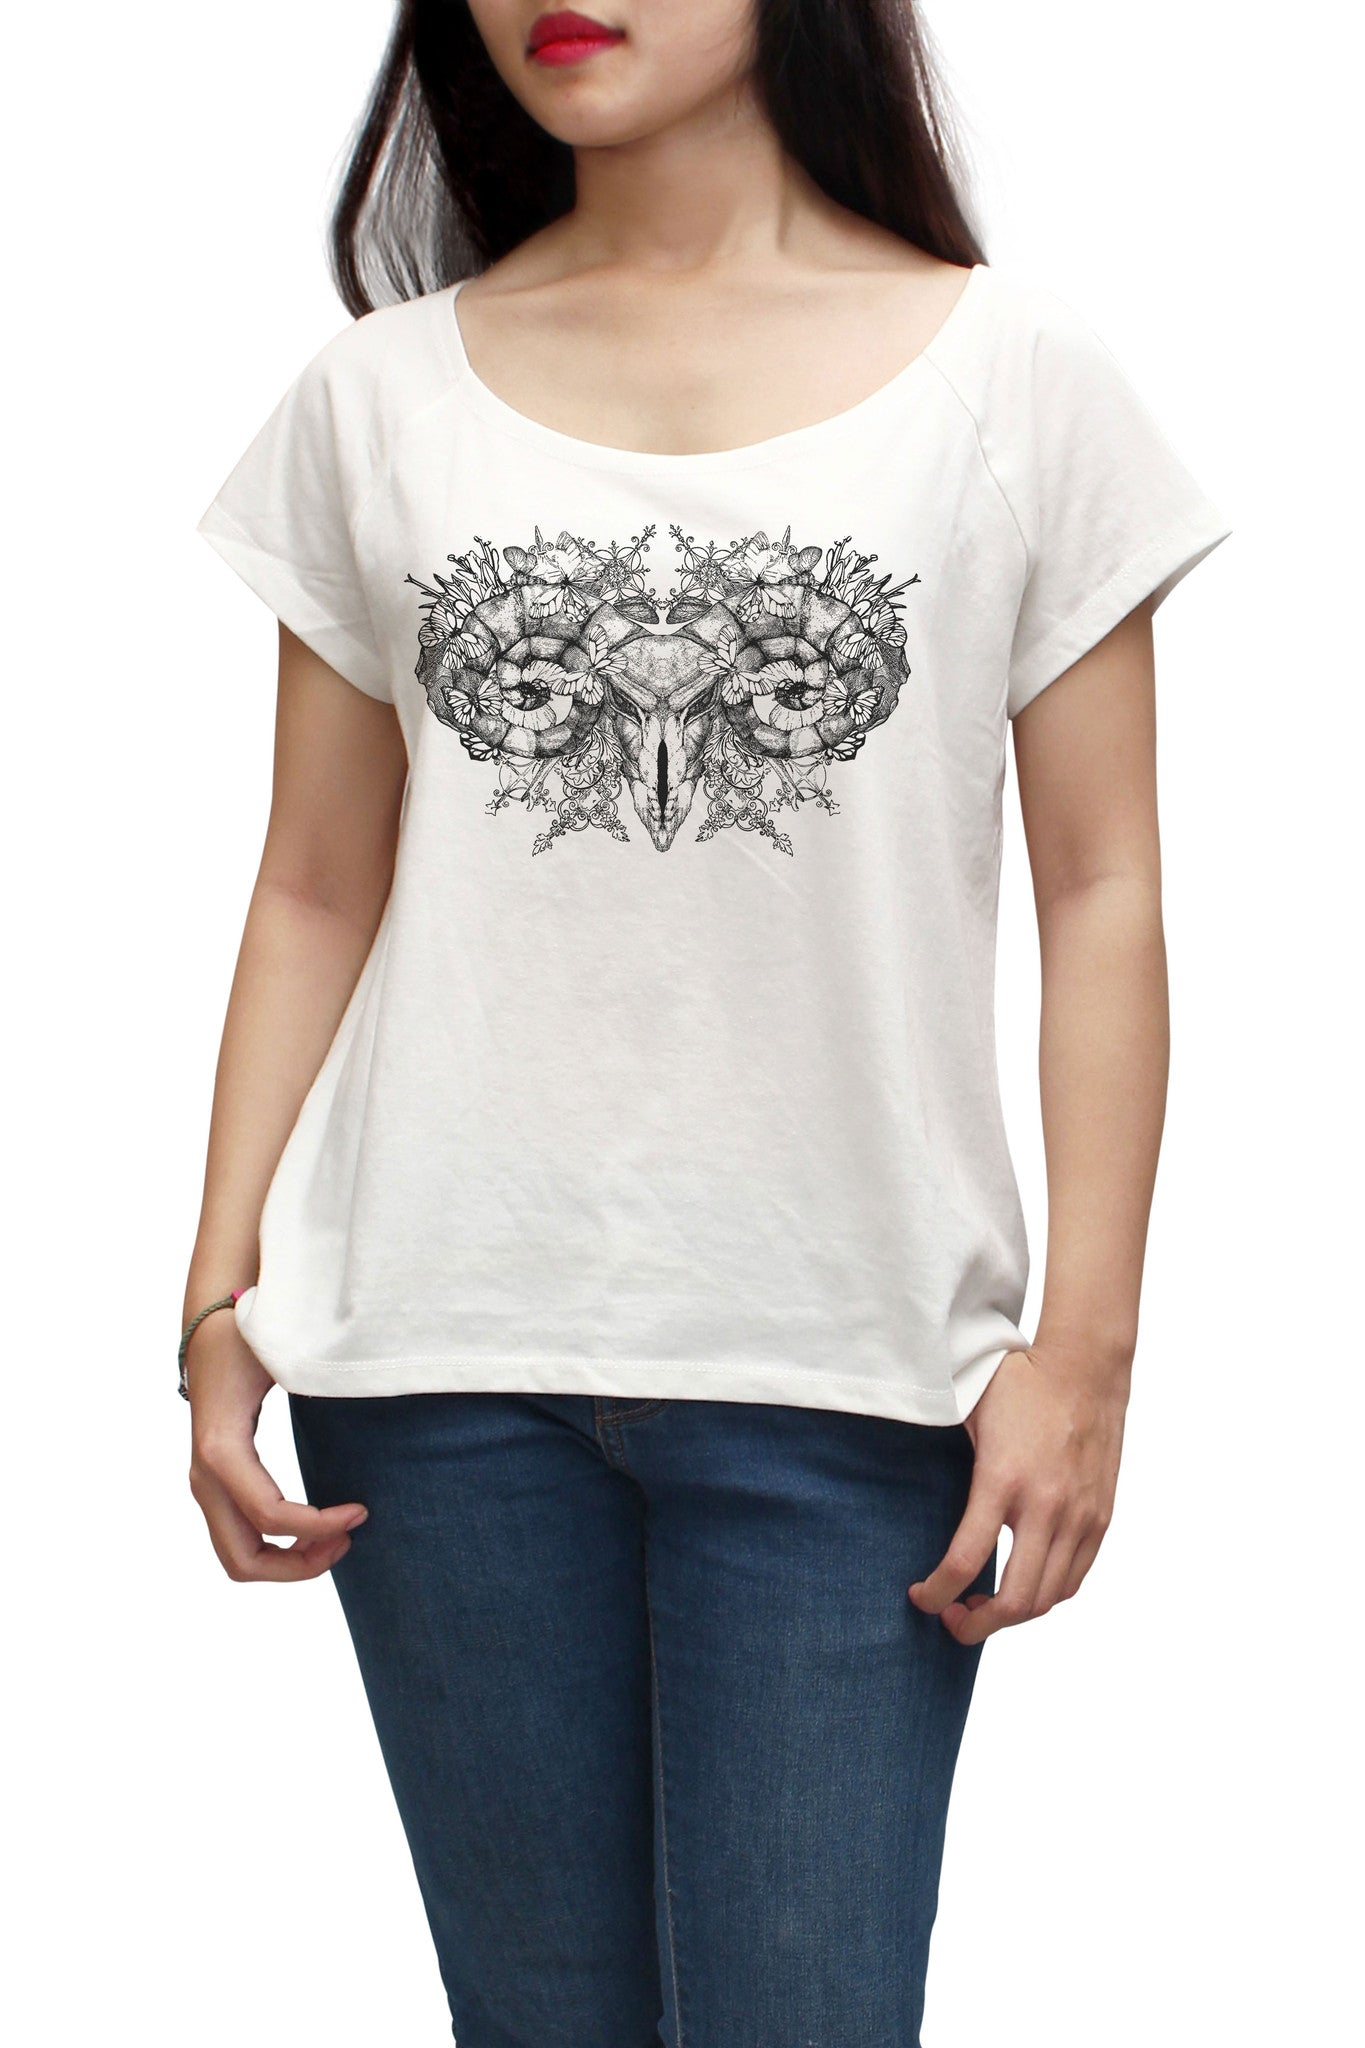 Women Aries skull with horns Printed Short Sleeves T-shirt WTS_01